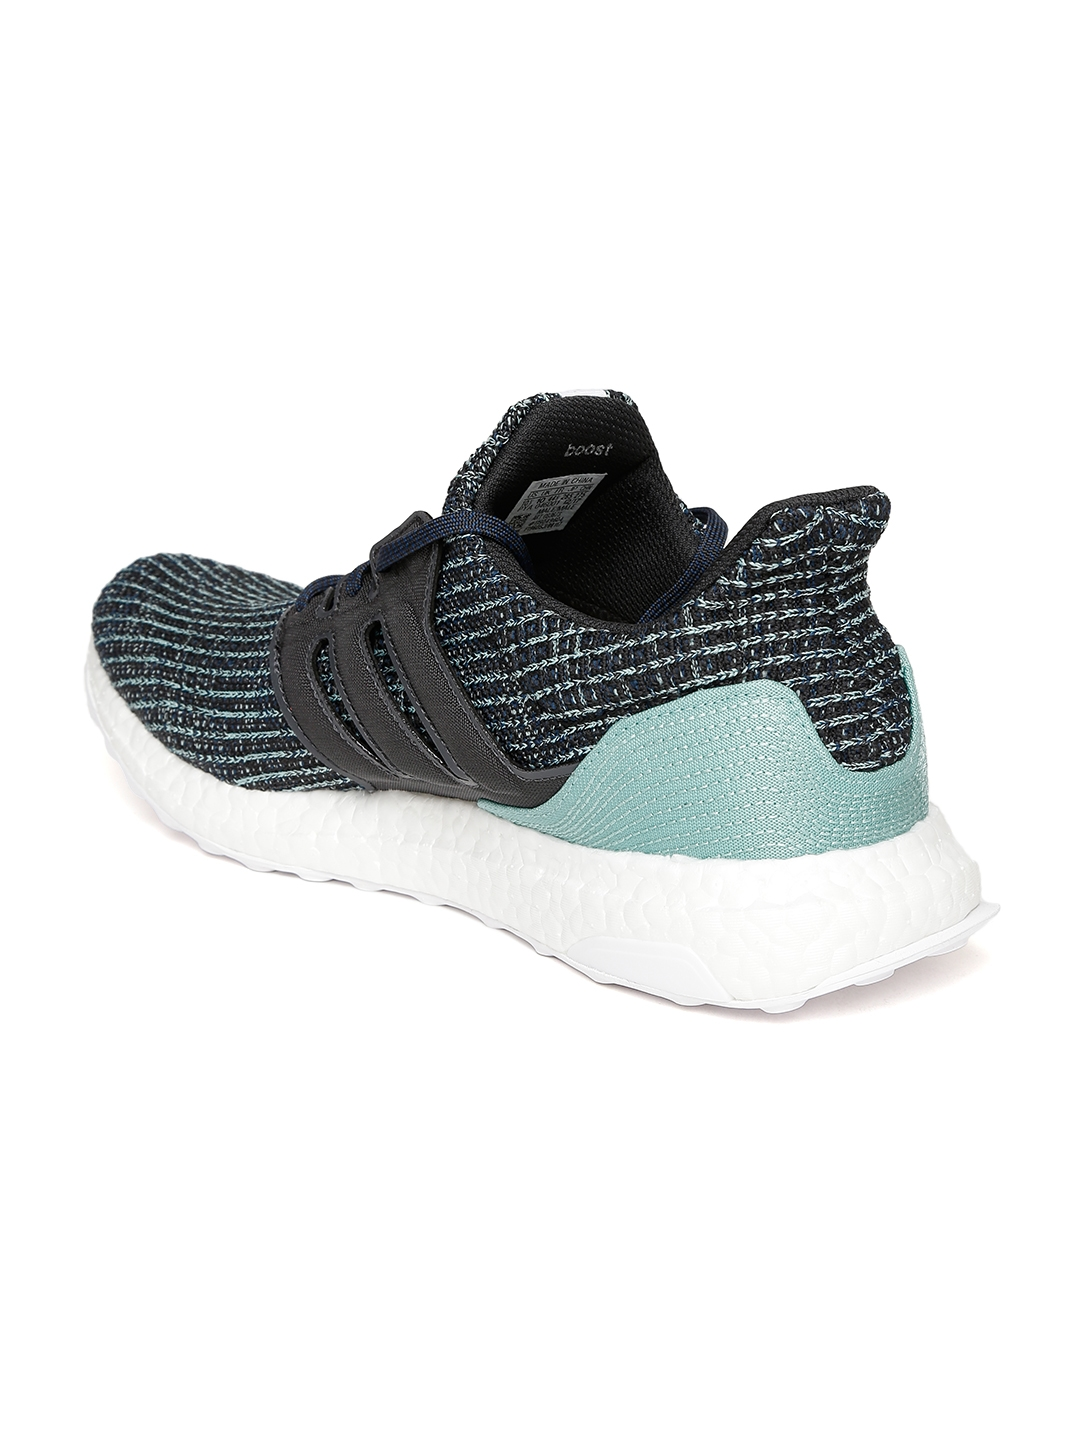 4c4c0736b Buy ADIDAS Men Blue   Black Ultraboost PARLEY Running Shoes - Sports ...